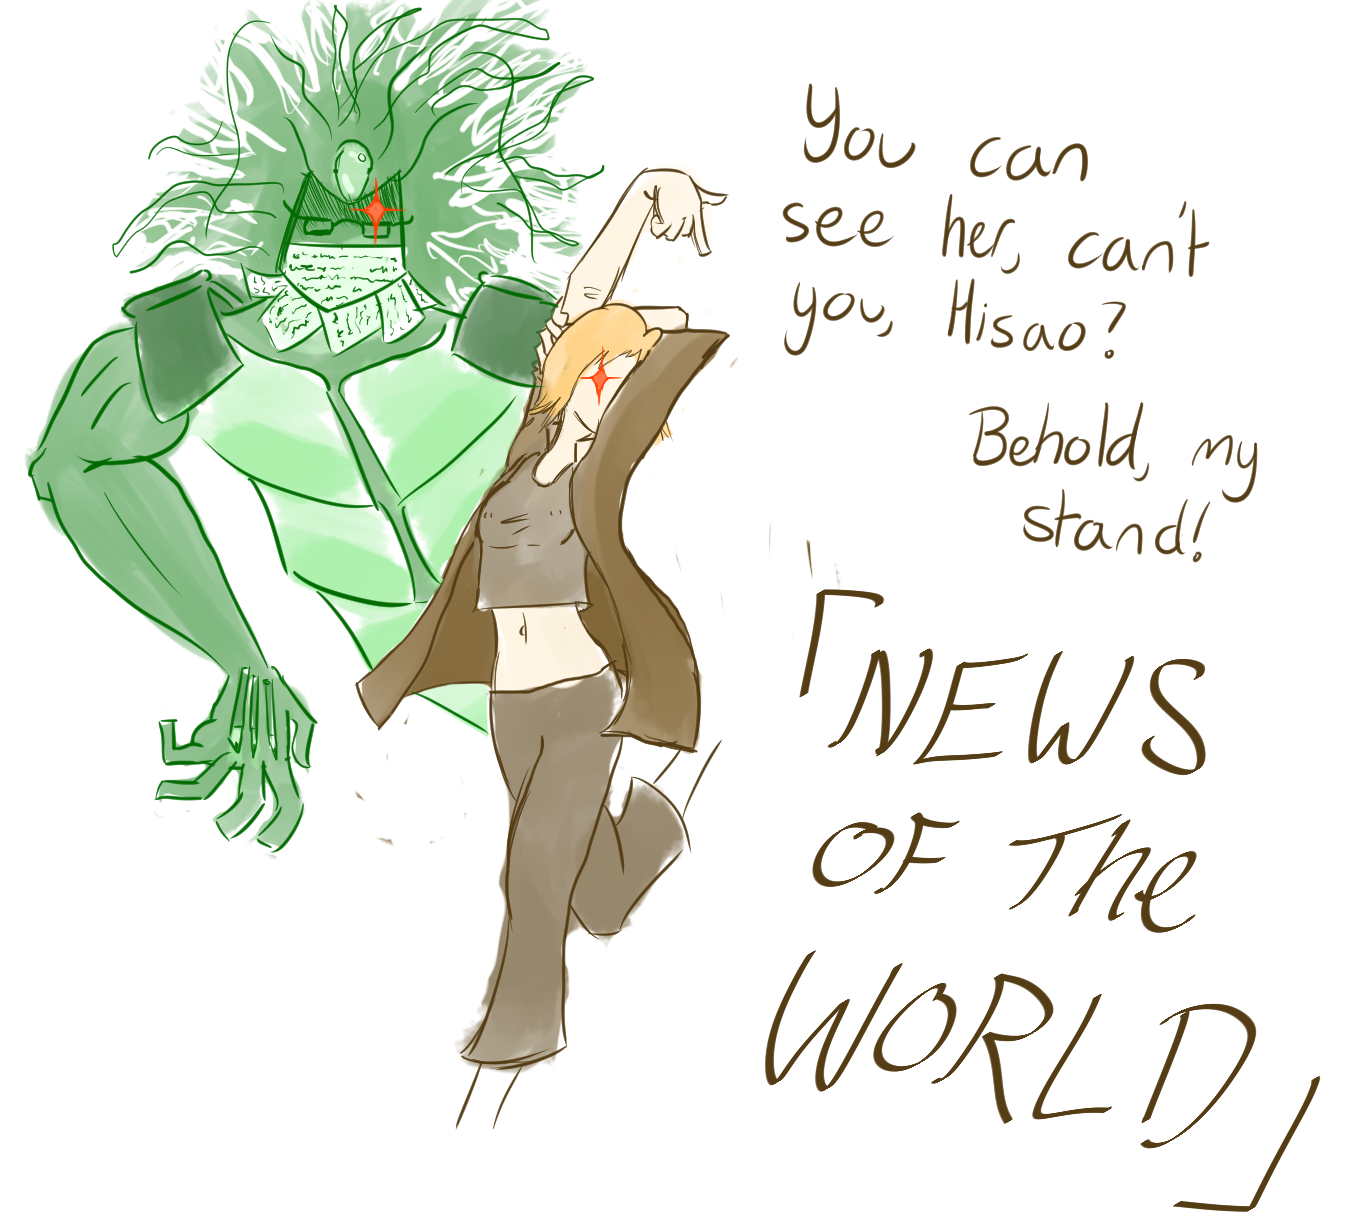 News Of The World.png